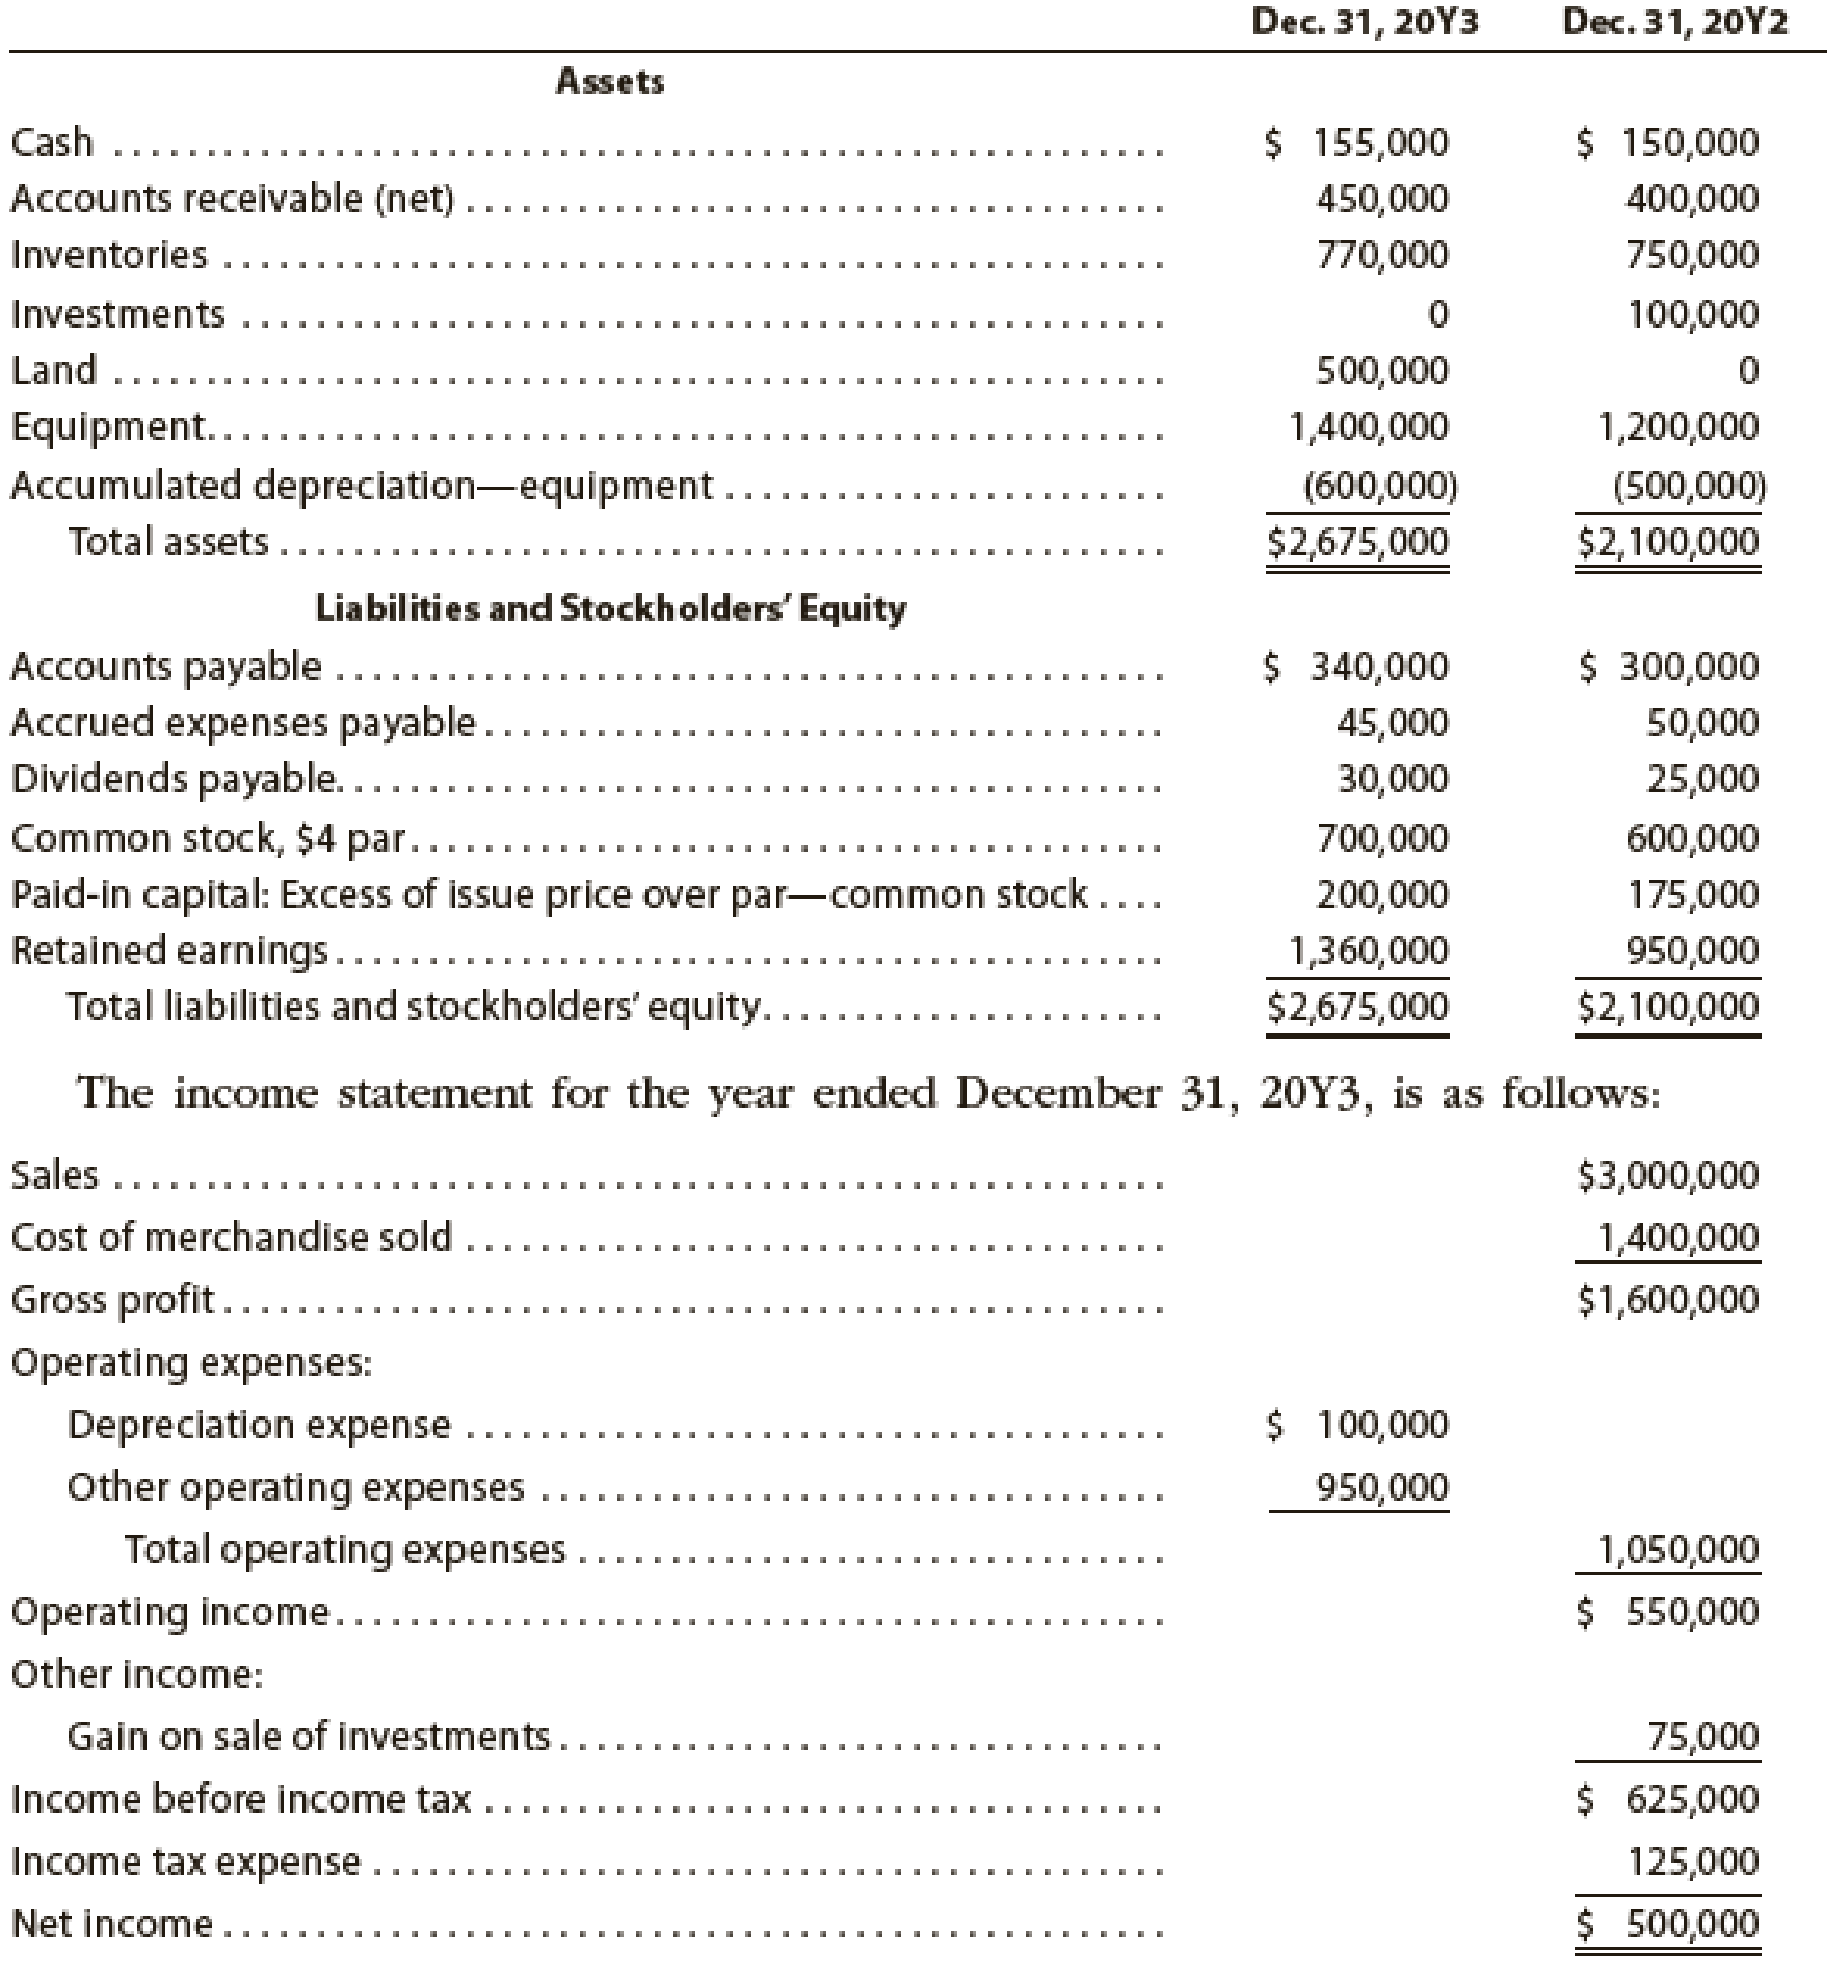 Chapter 16, Problem 5PA, The comparative balance sheet of Navaria Inc. for December 31, 20Y3 and 20Y2, is as follows: